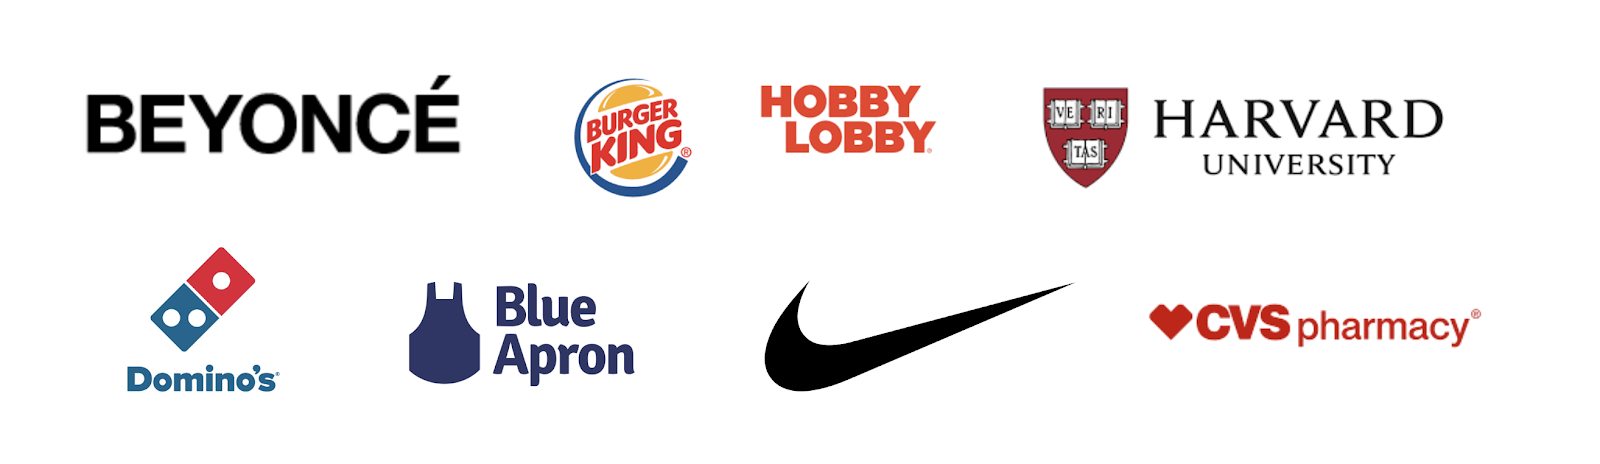 Beyoncé, hobby lobby, blue apron, Nike, and the famous Domino's lawsuit.